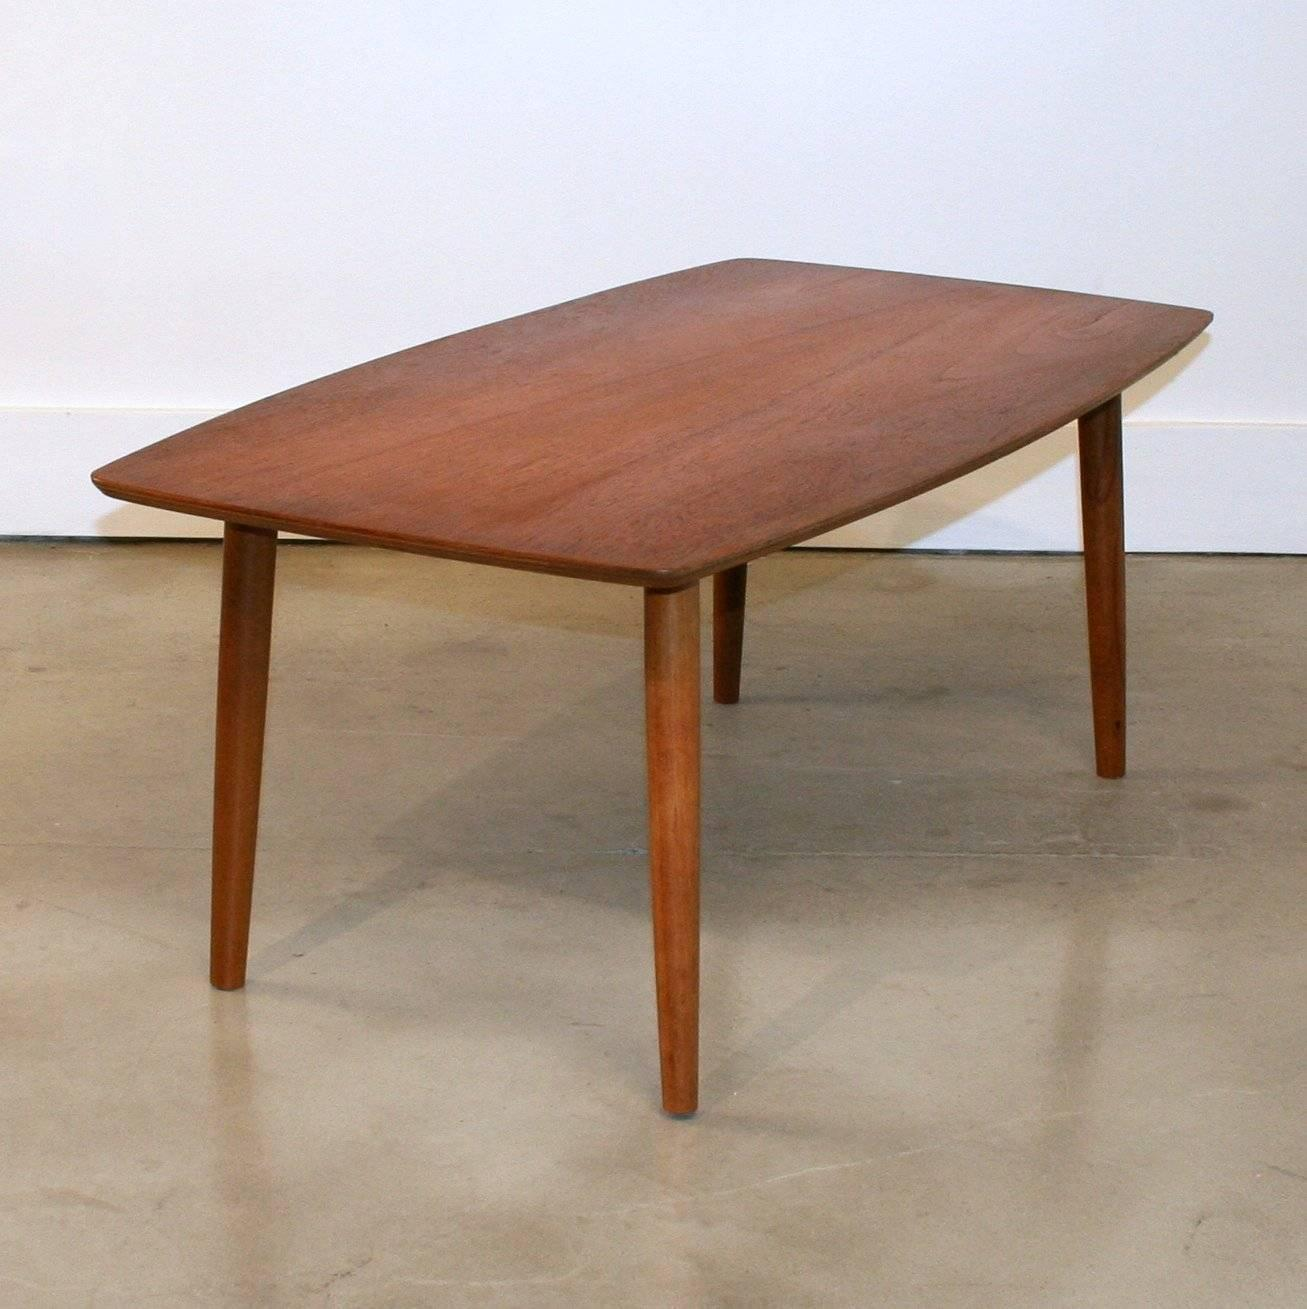 Antique Teak Coffee Table: Vintage Danish Small-Scale Teak Coffee Table At 1stdibs